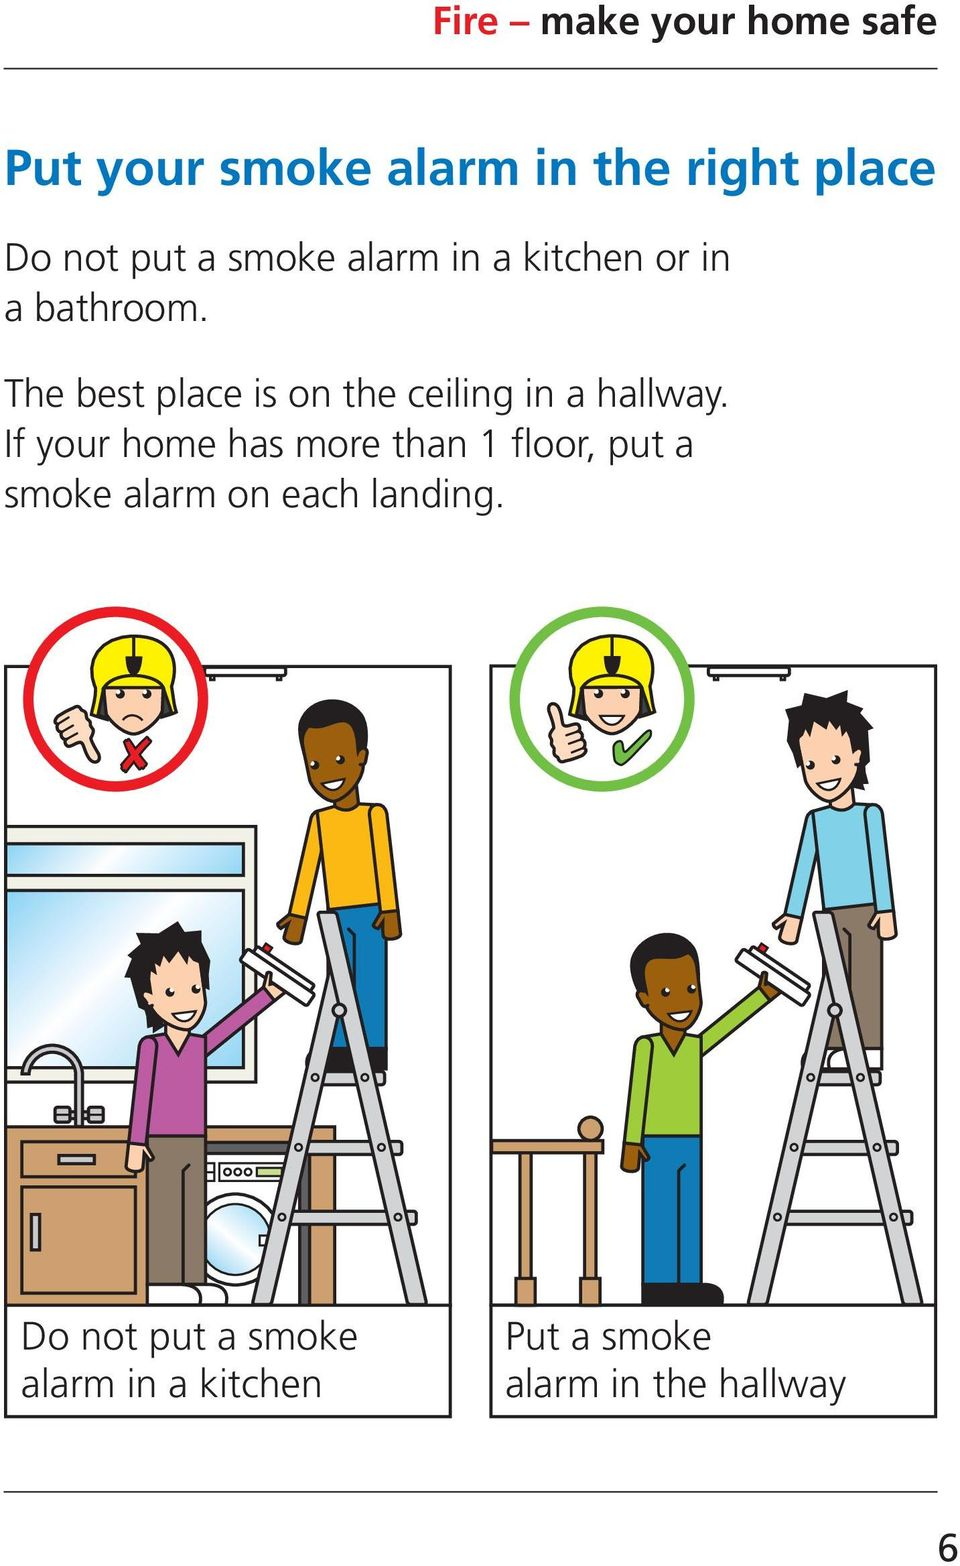 If your home has more than 1 floor, put a smoke alarm on each landing.